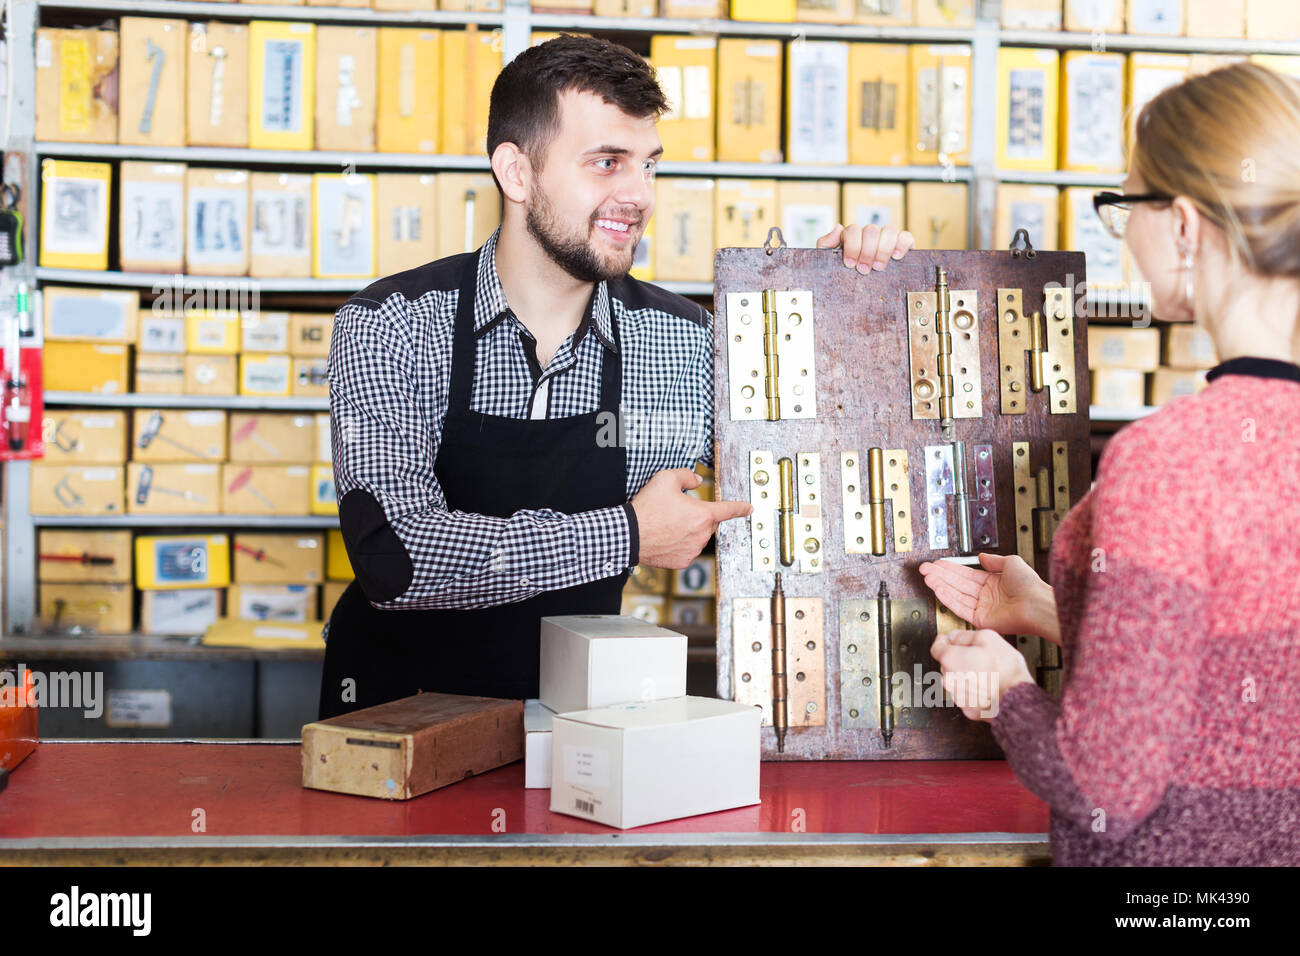 Male seller offering door hinges to female customer in houseware shop  sc 1 st  Alamy & Male seller offering door hinges to female customer in houseware ...